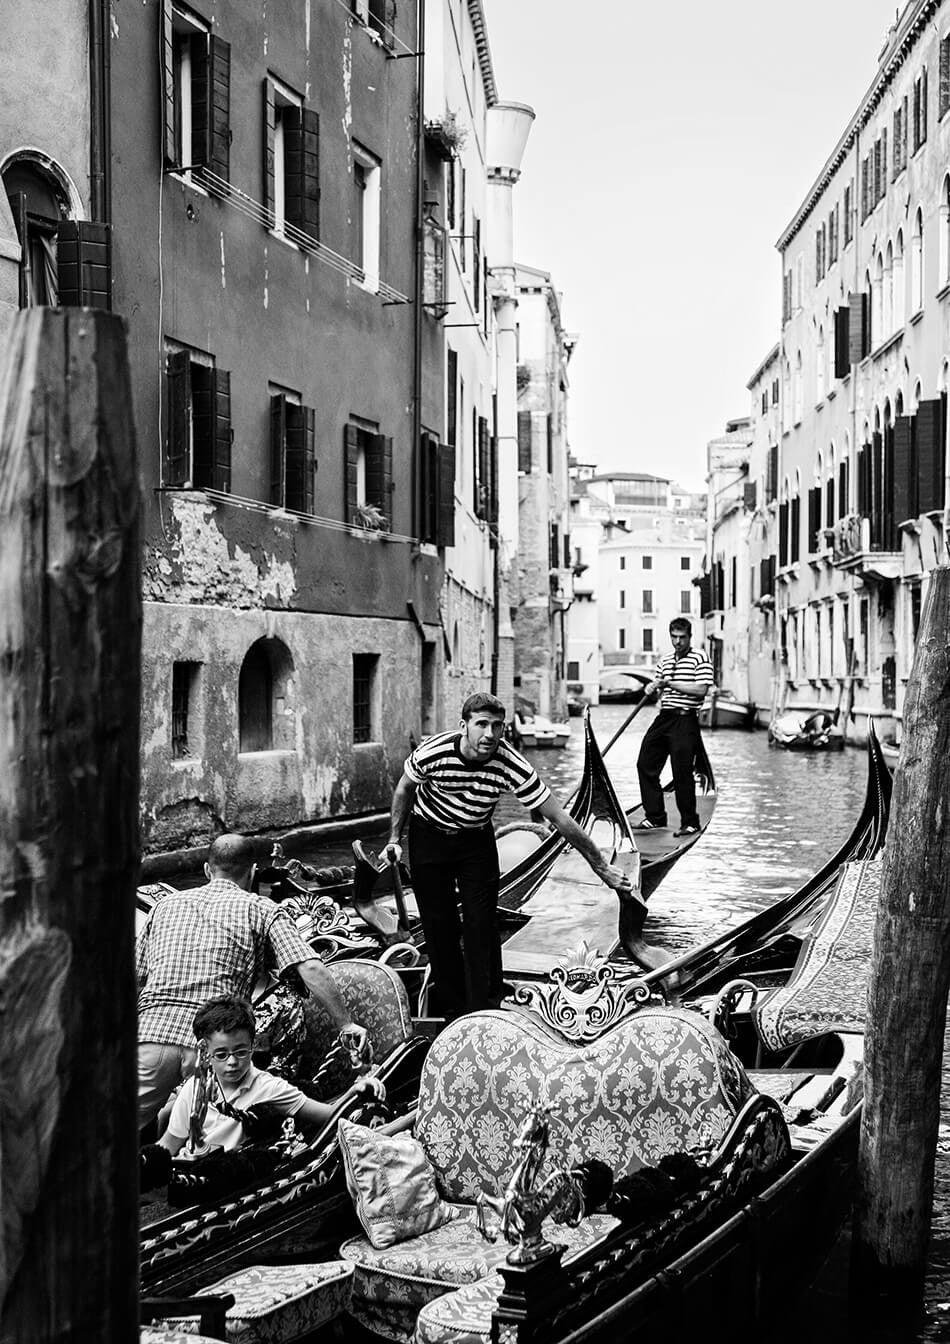 venice art print gondola photography venice photography art print photo of venice gondola black and white interior venice gondola art print photographic print of venice black and white interior artwork monochrome interior